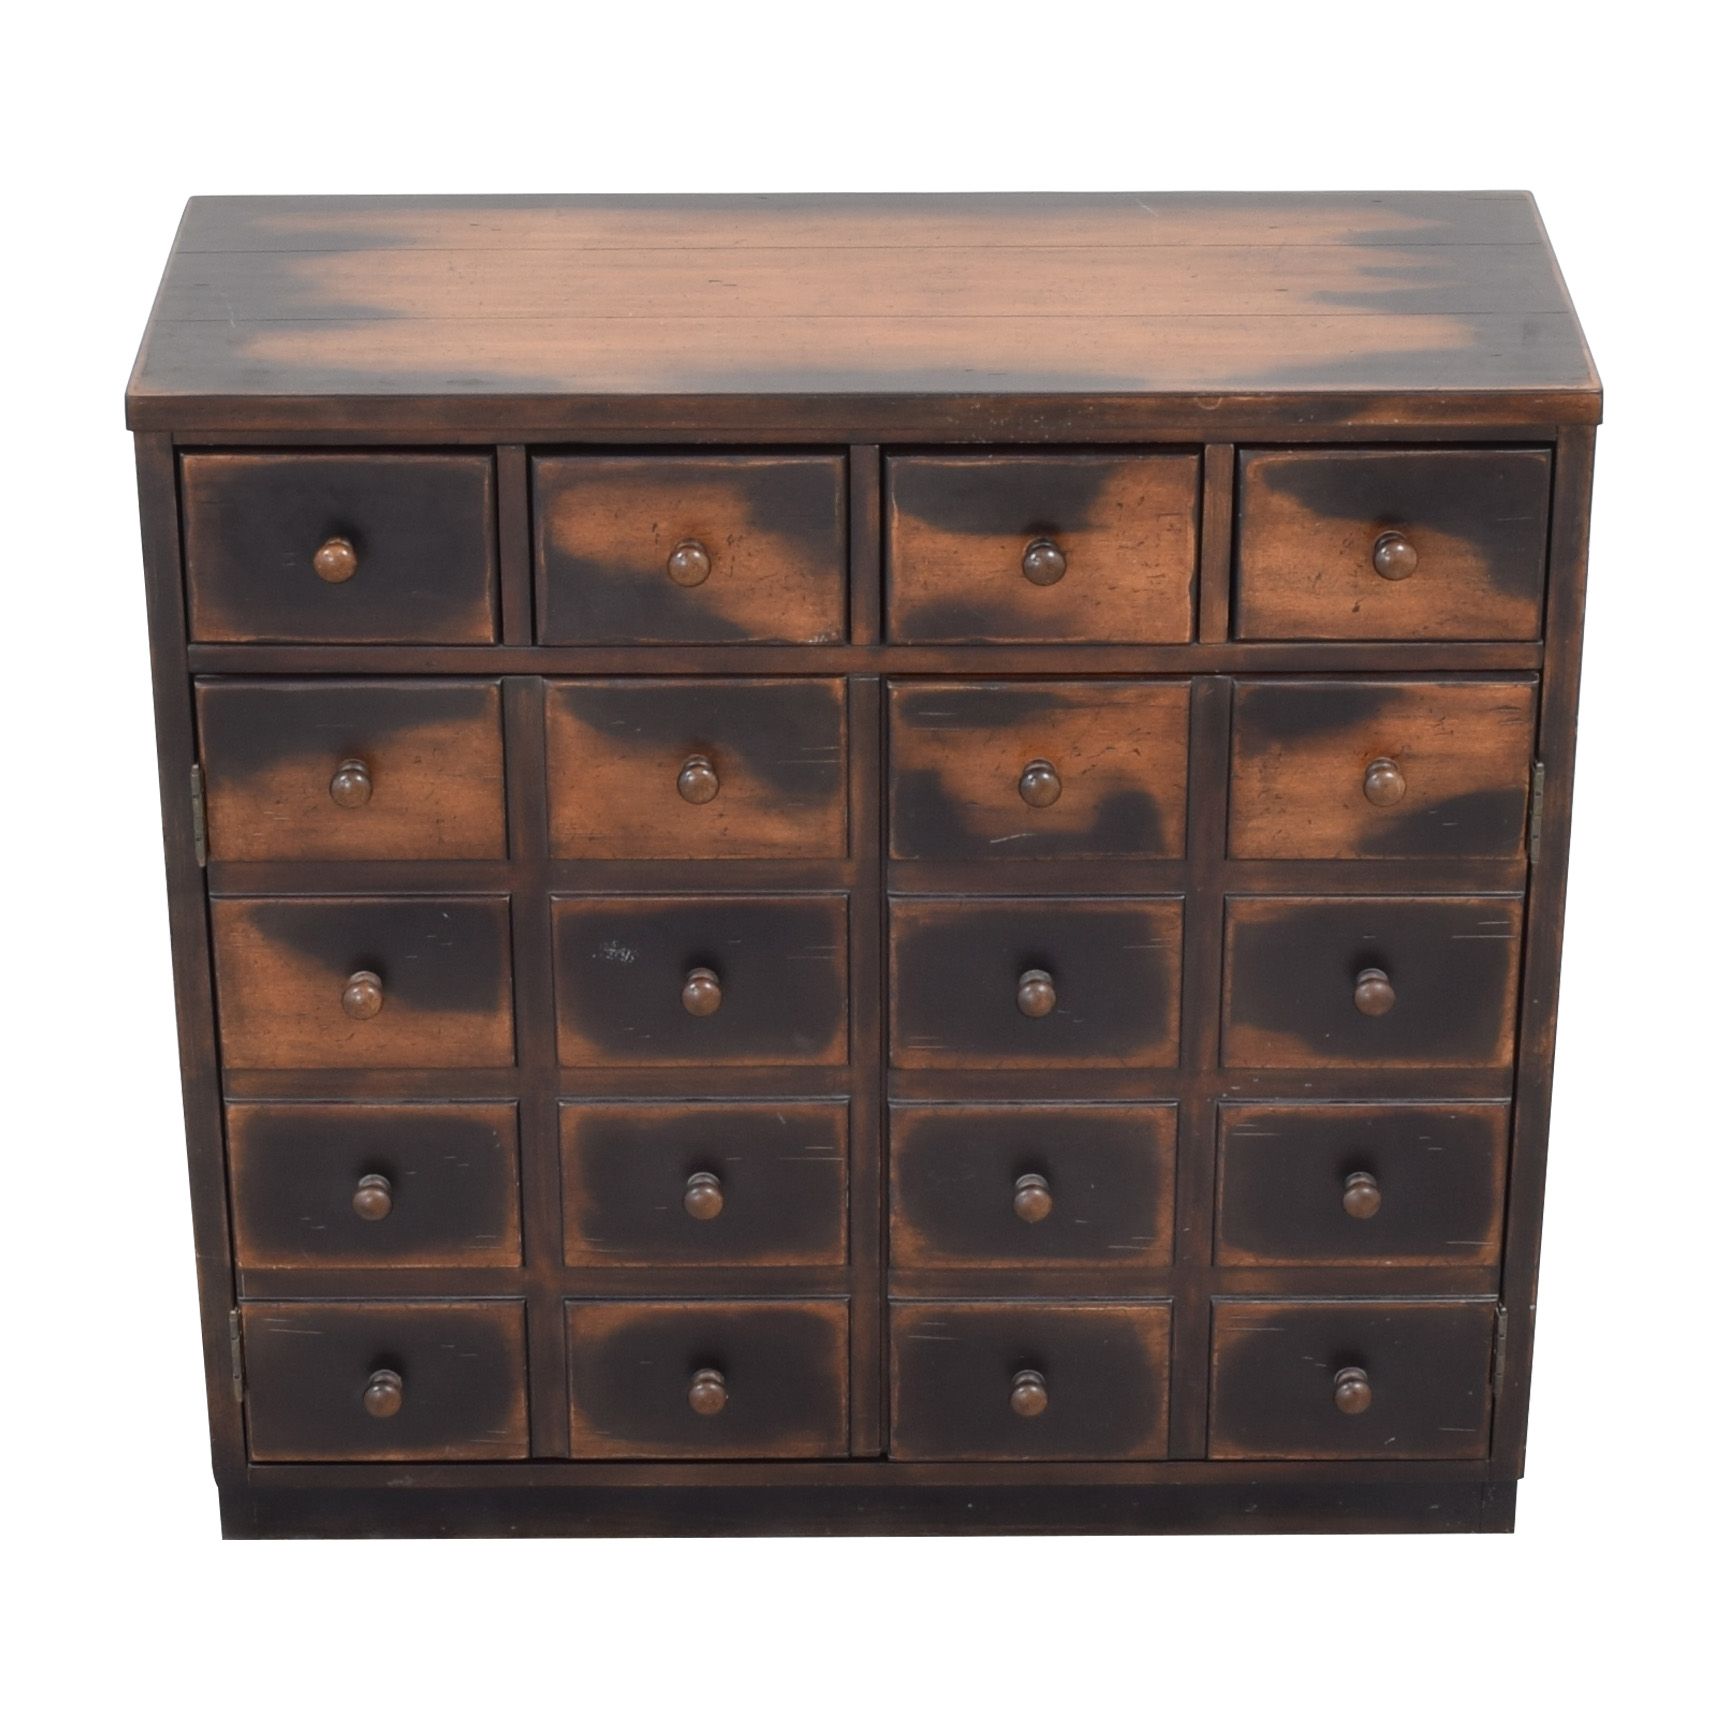 Pottery Barn Pottery Barn Andover Cabinet price